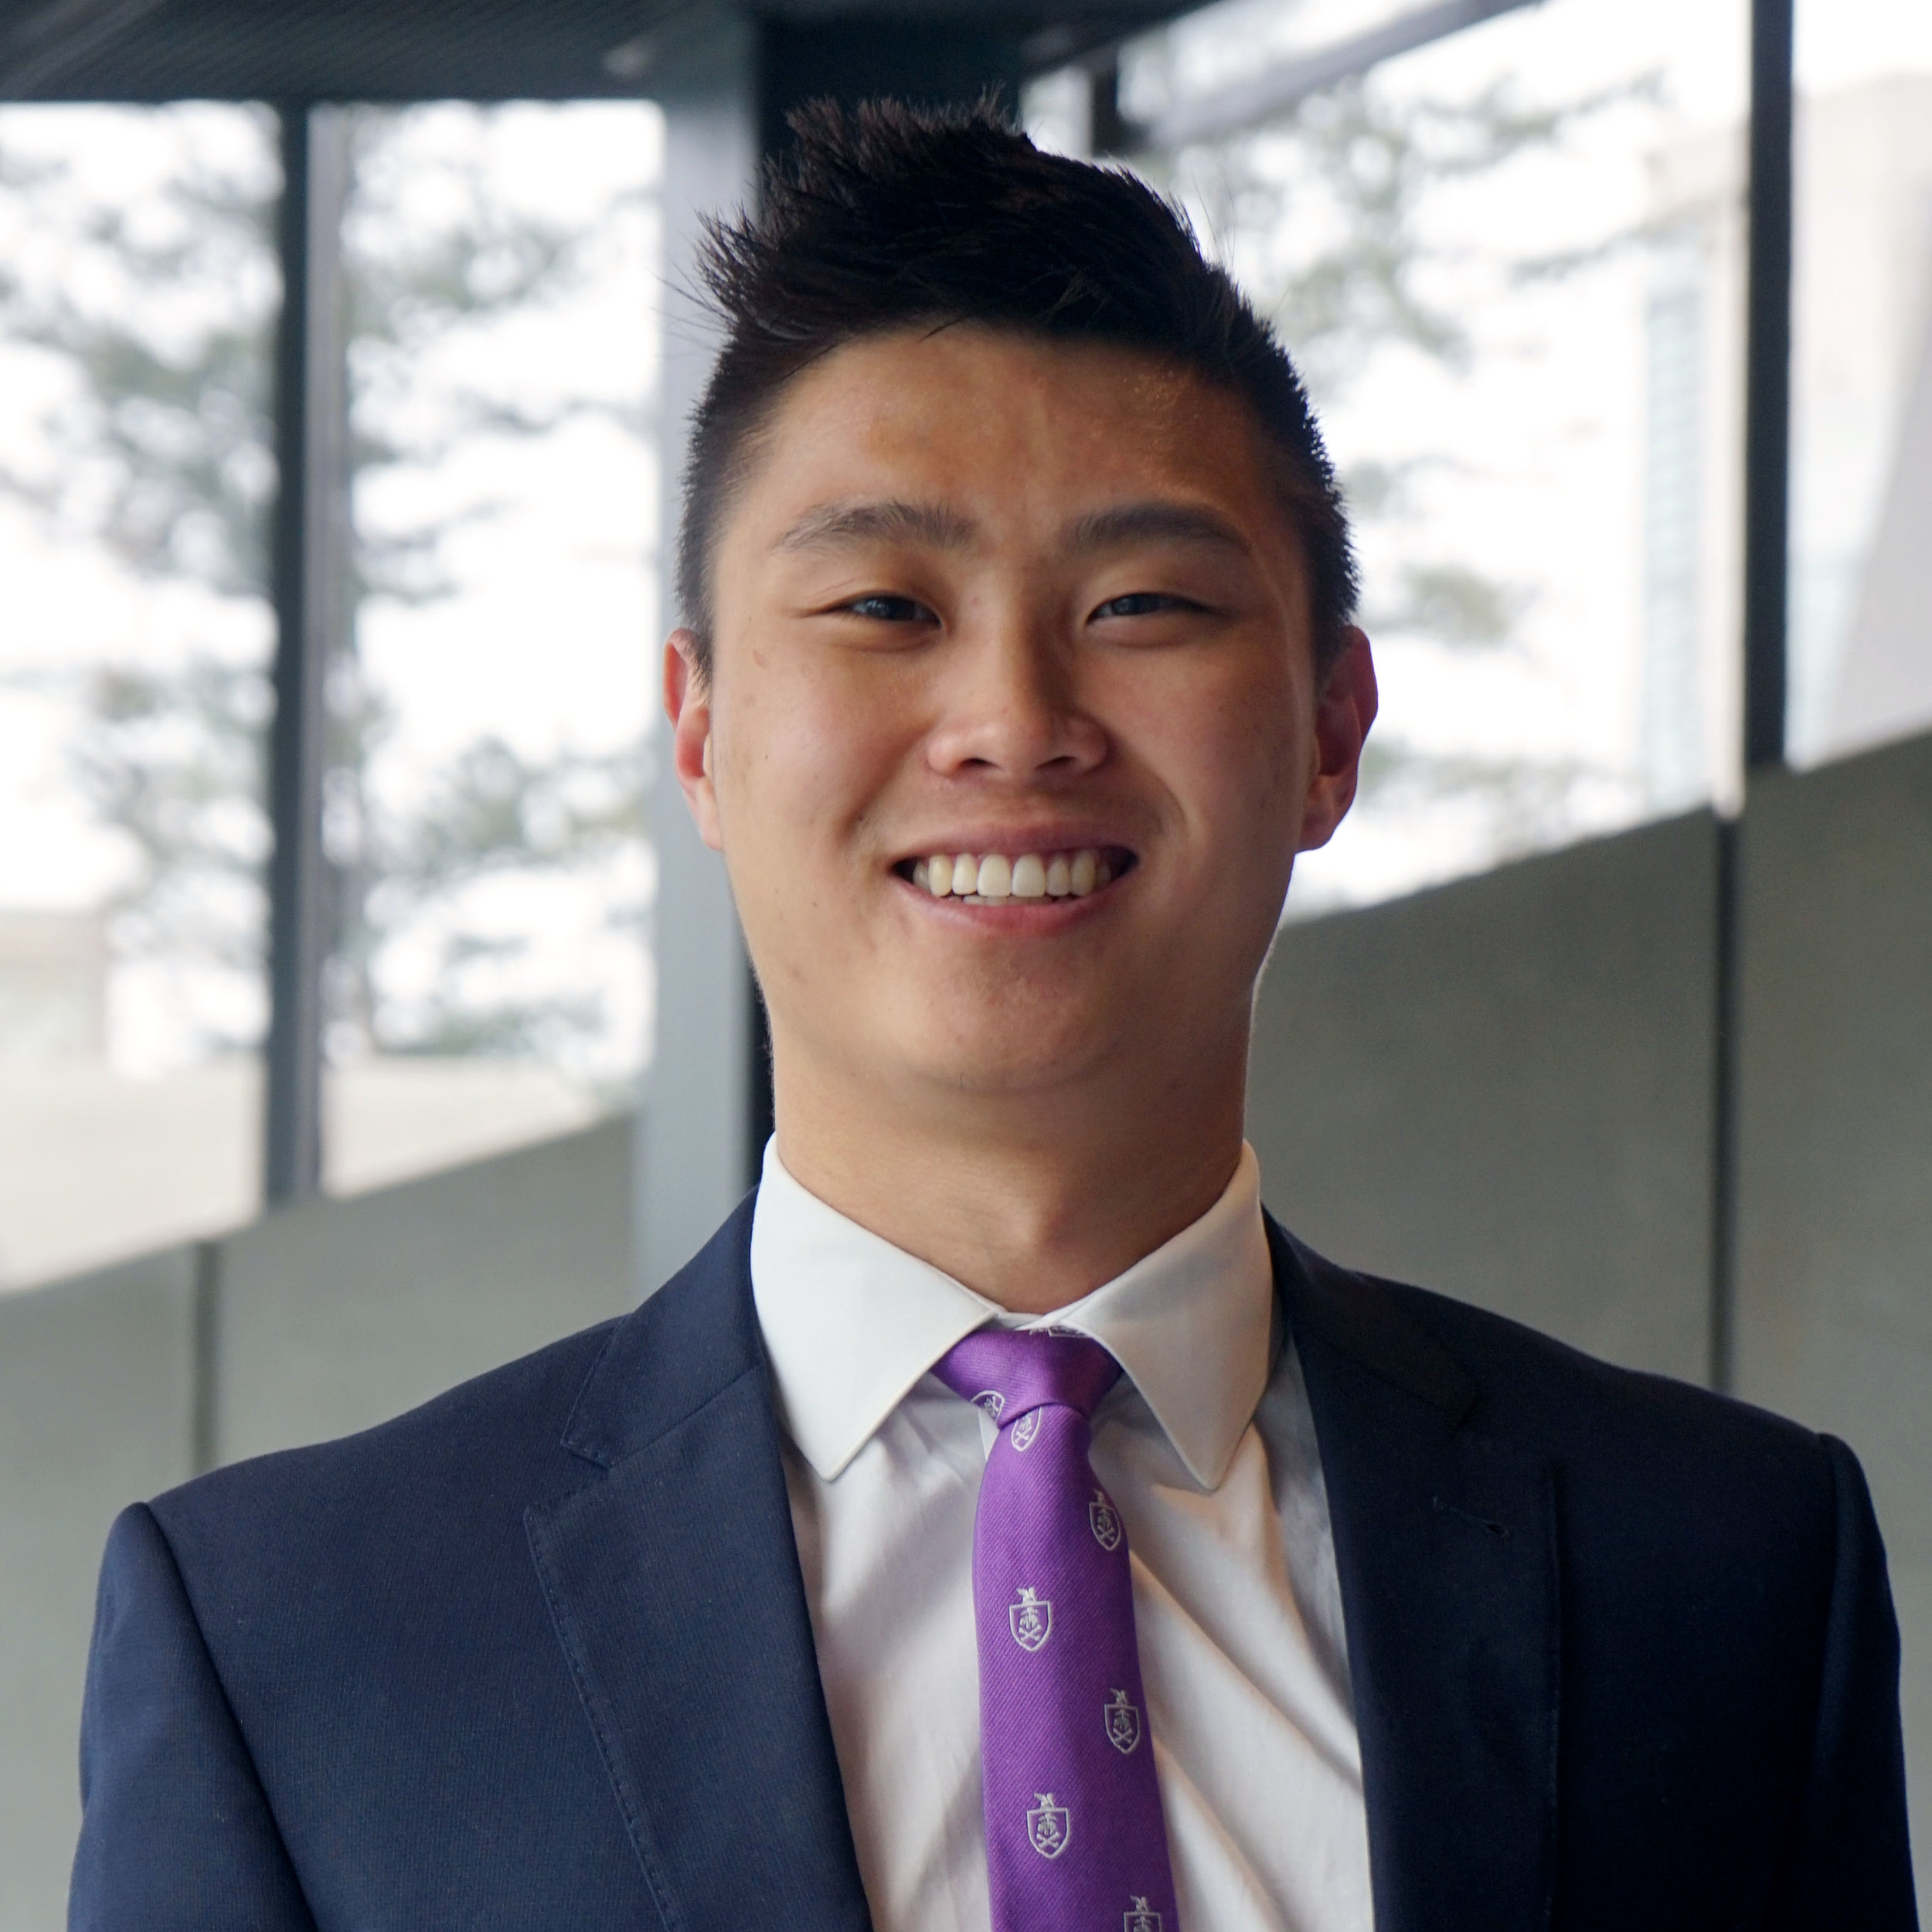 Jeffrey Wu | Associate    Statistical Science, 2020    Research Assistant at the Biostatistics Department of the University of Florida    Research Assistant in Statistical Science Department, Chi Phi Fraternity